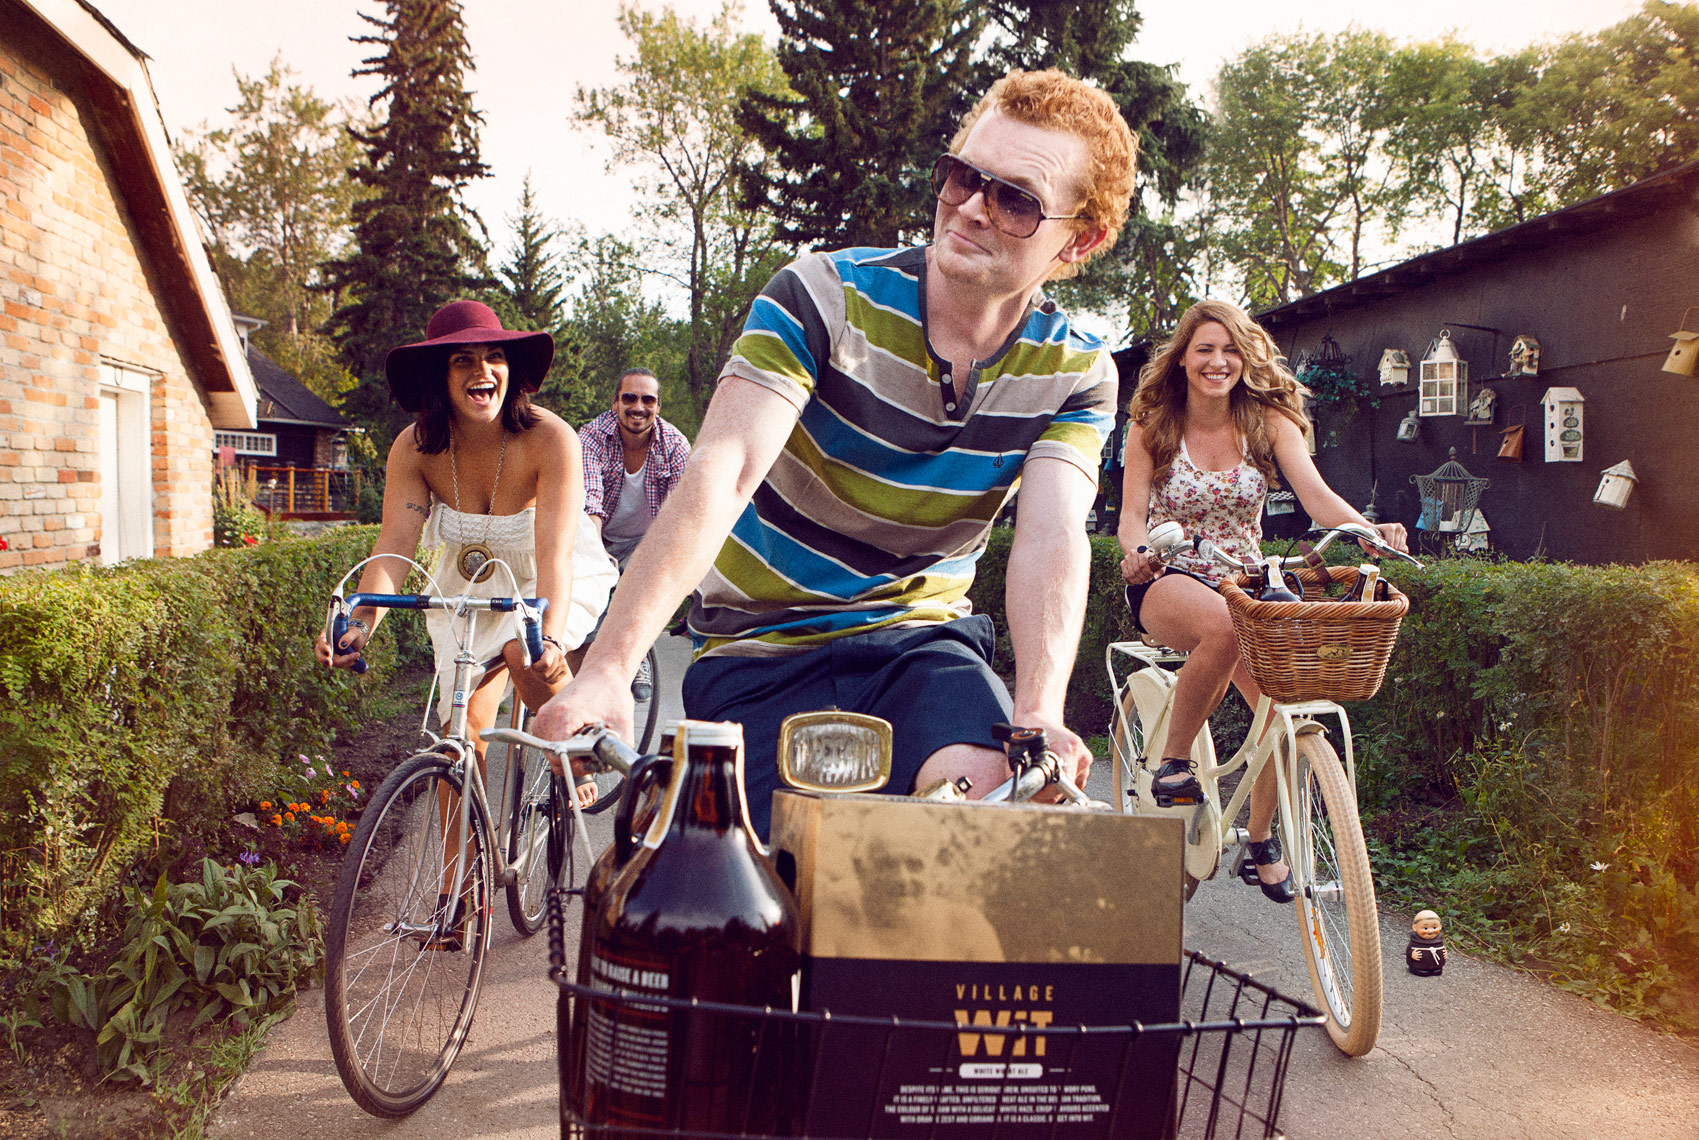 Red headed young man riding a bike with basket of beer and friends